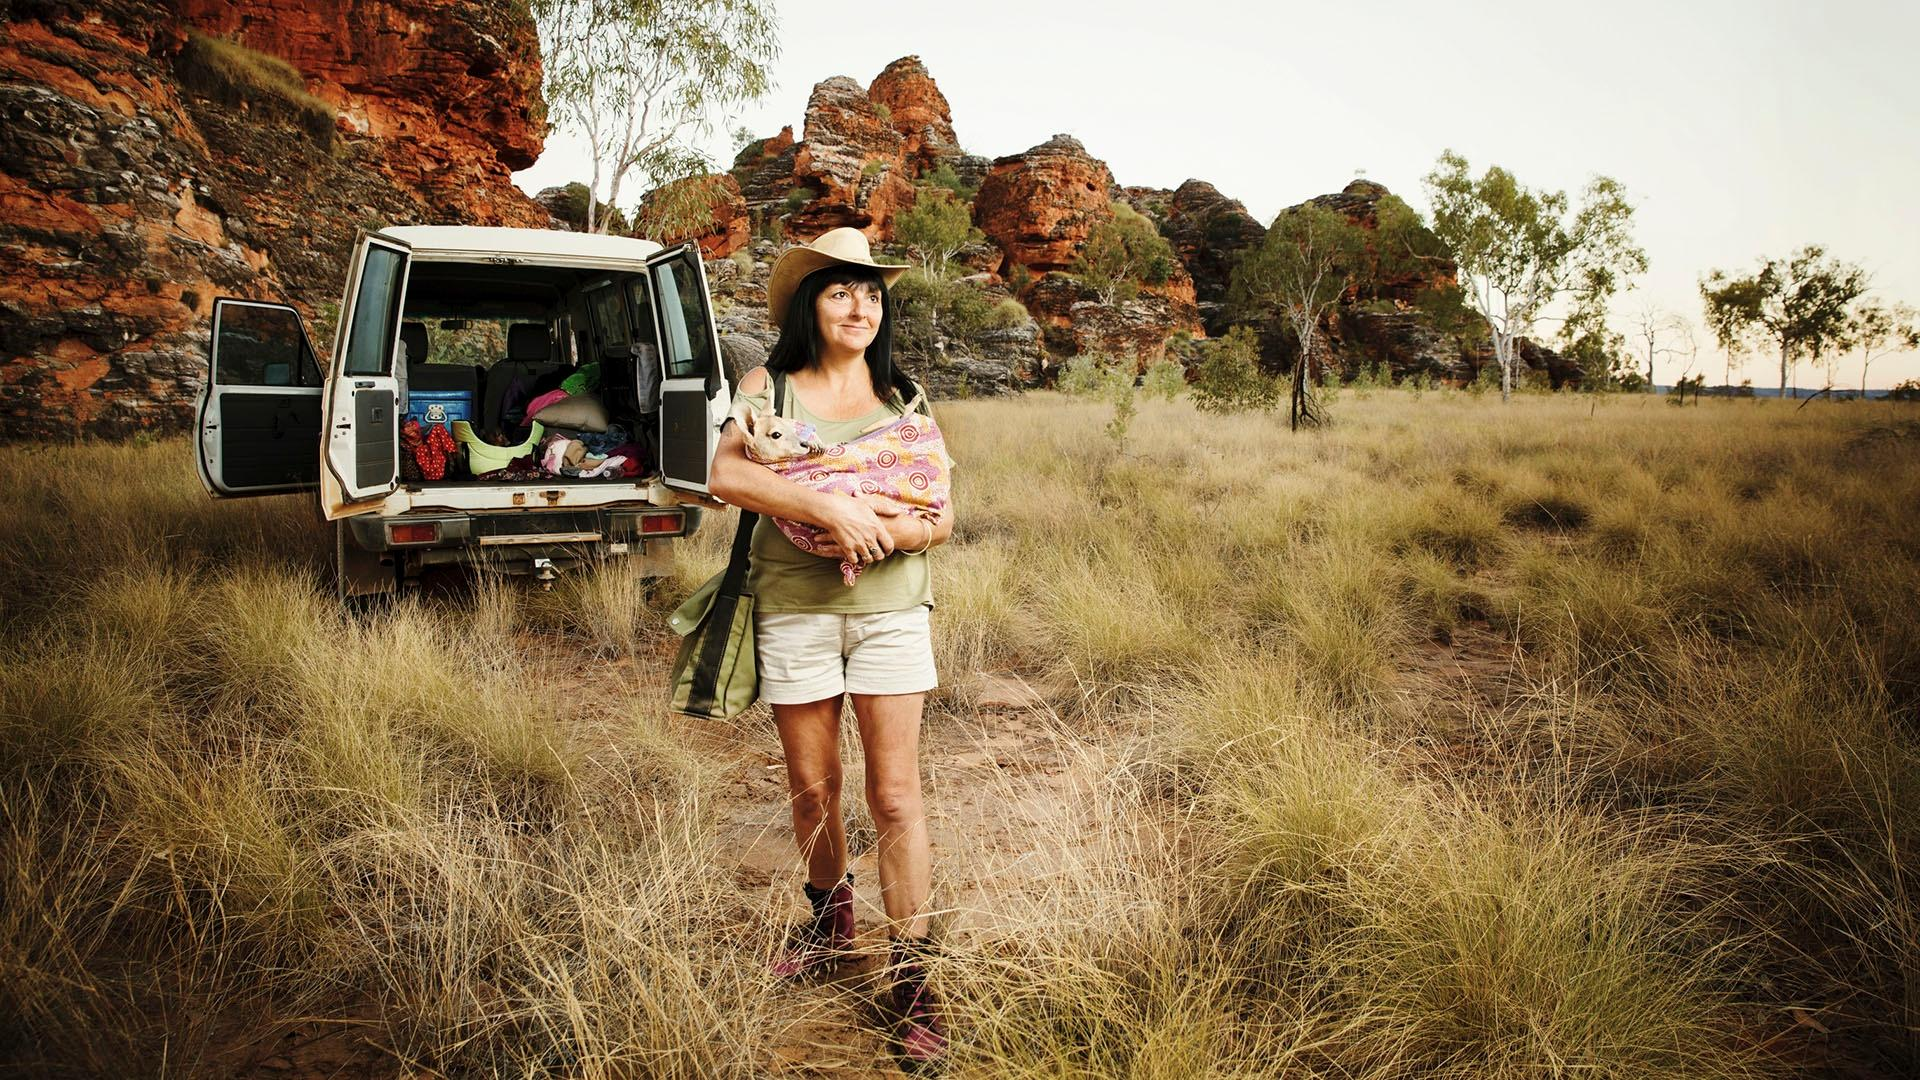 Episode 1 - The Kimberley Comes Alive | Full Pgm.